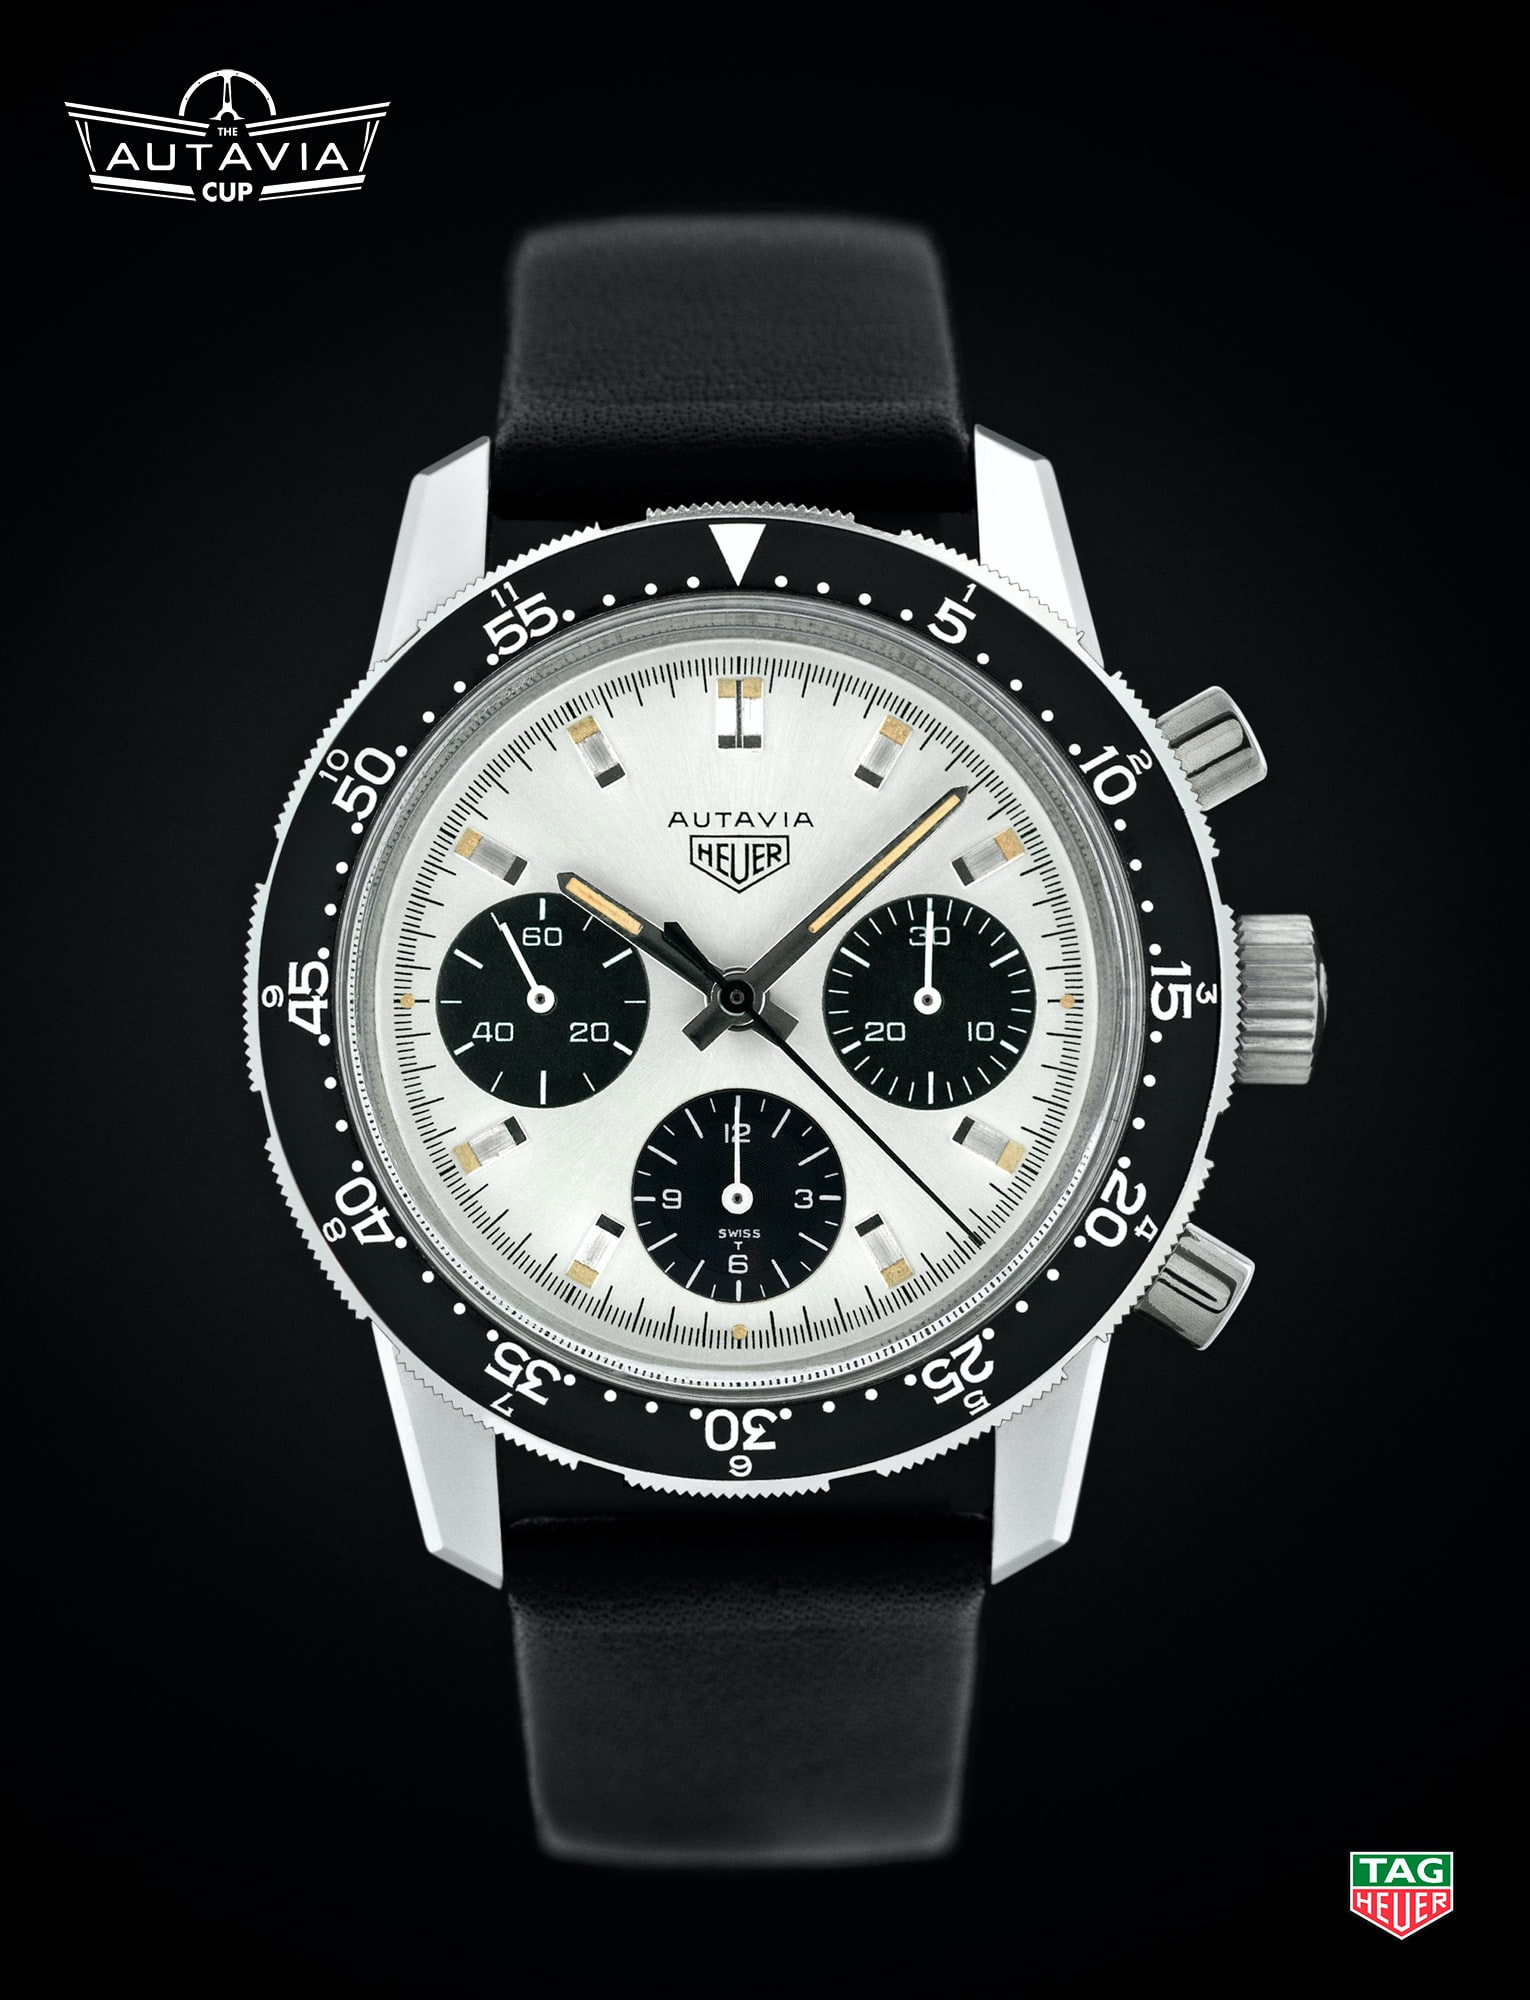 Heuer Autavia Ref. 2446c SN TAG Heuer Will Relaunch The Autavia In 2017 – And Fans Get To Choose The Model TAG Heuer Will Relaunch The Autavia In 2017 – And Fans Get To Choose The Model 08 2446c SN